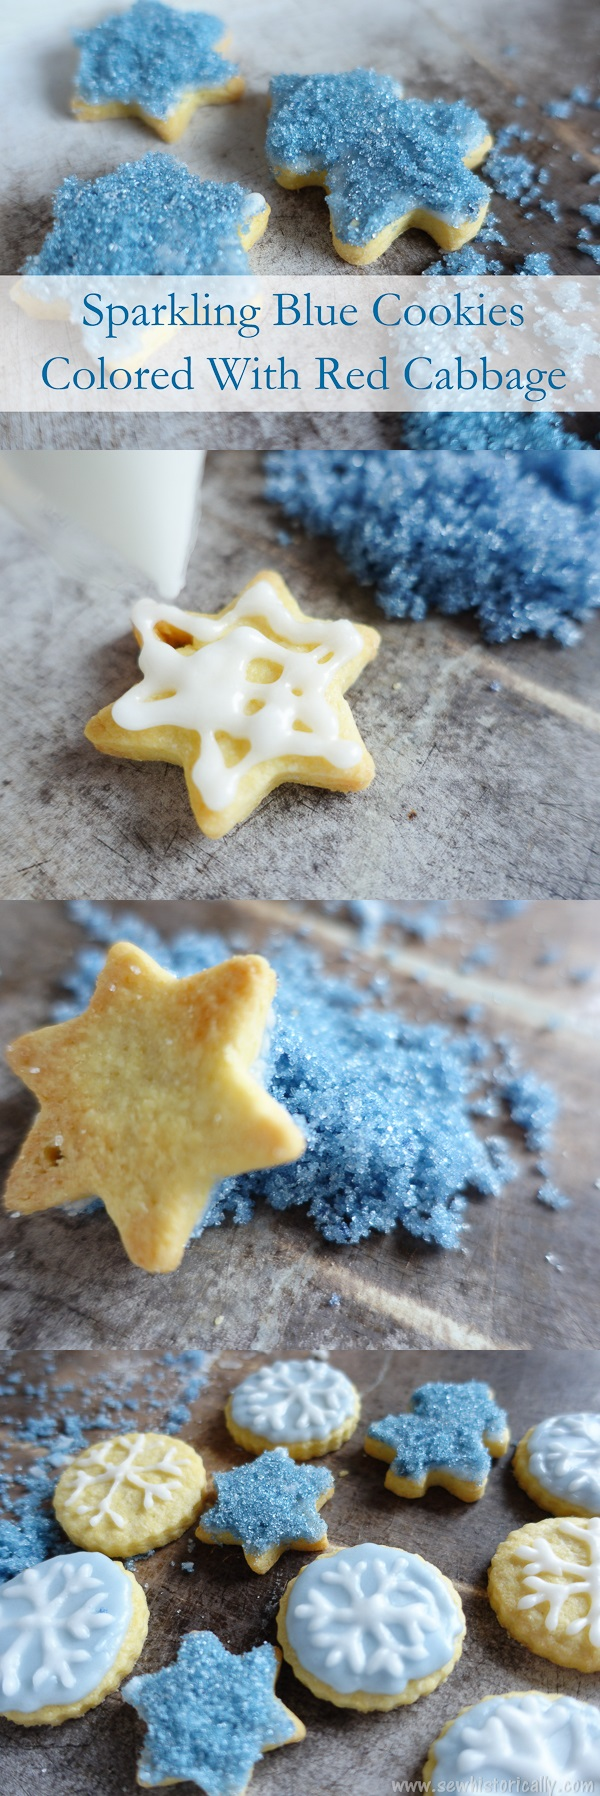 Sparkling Blue Cookies Colored With Red Cabbage